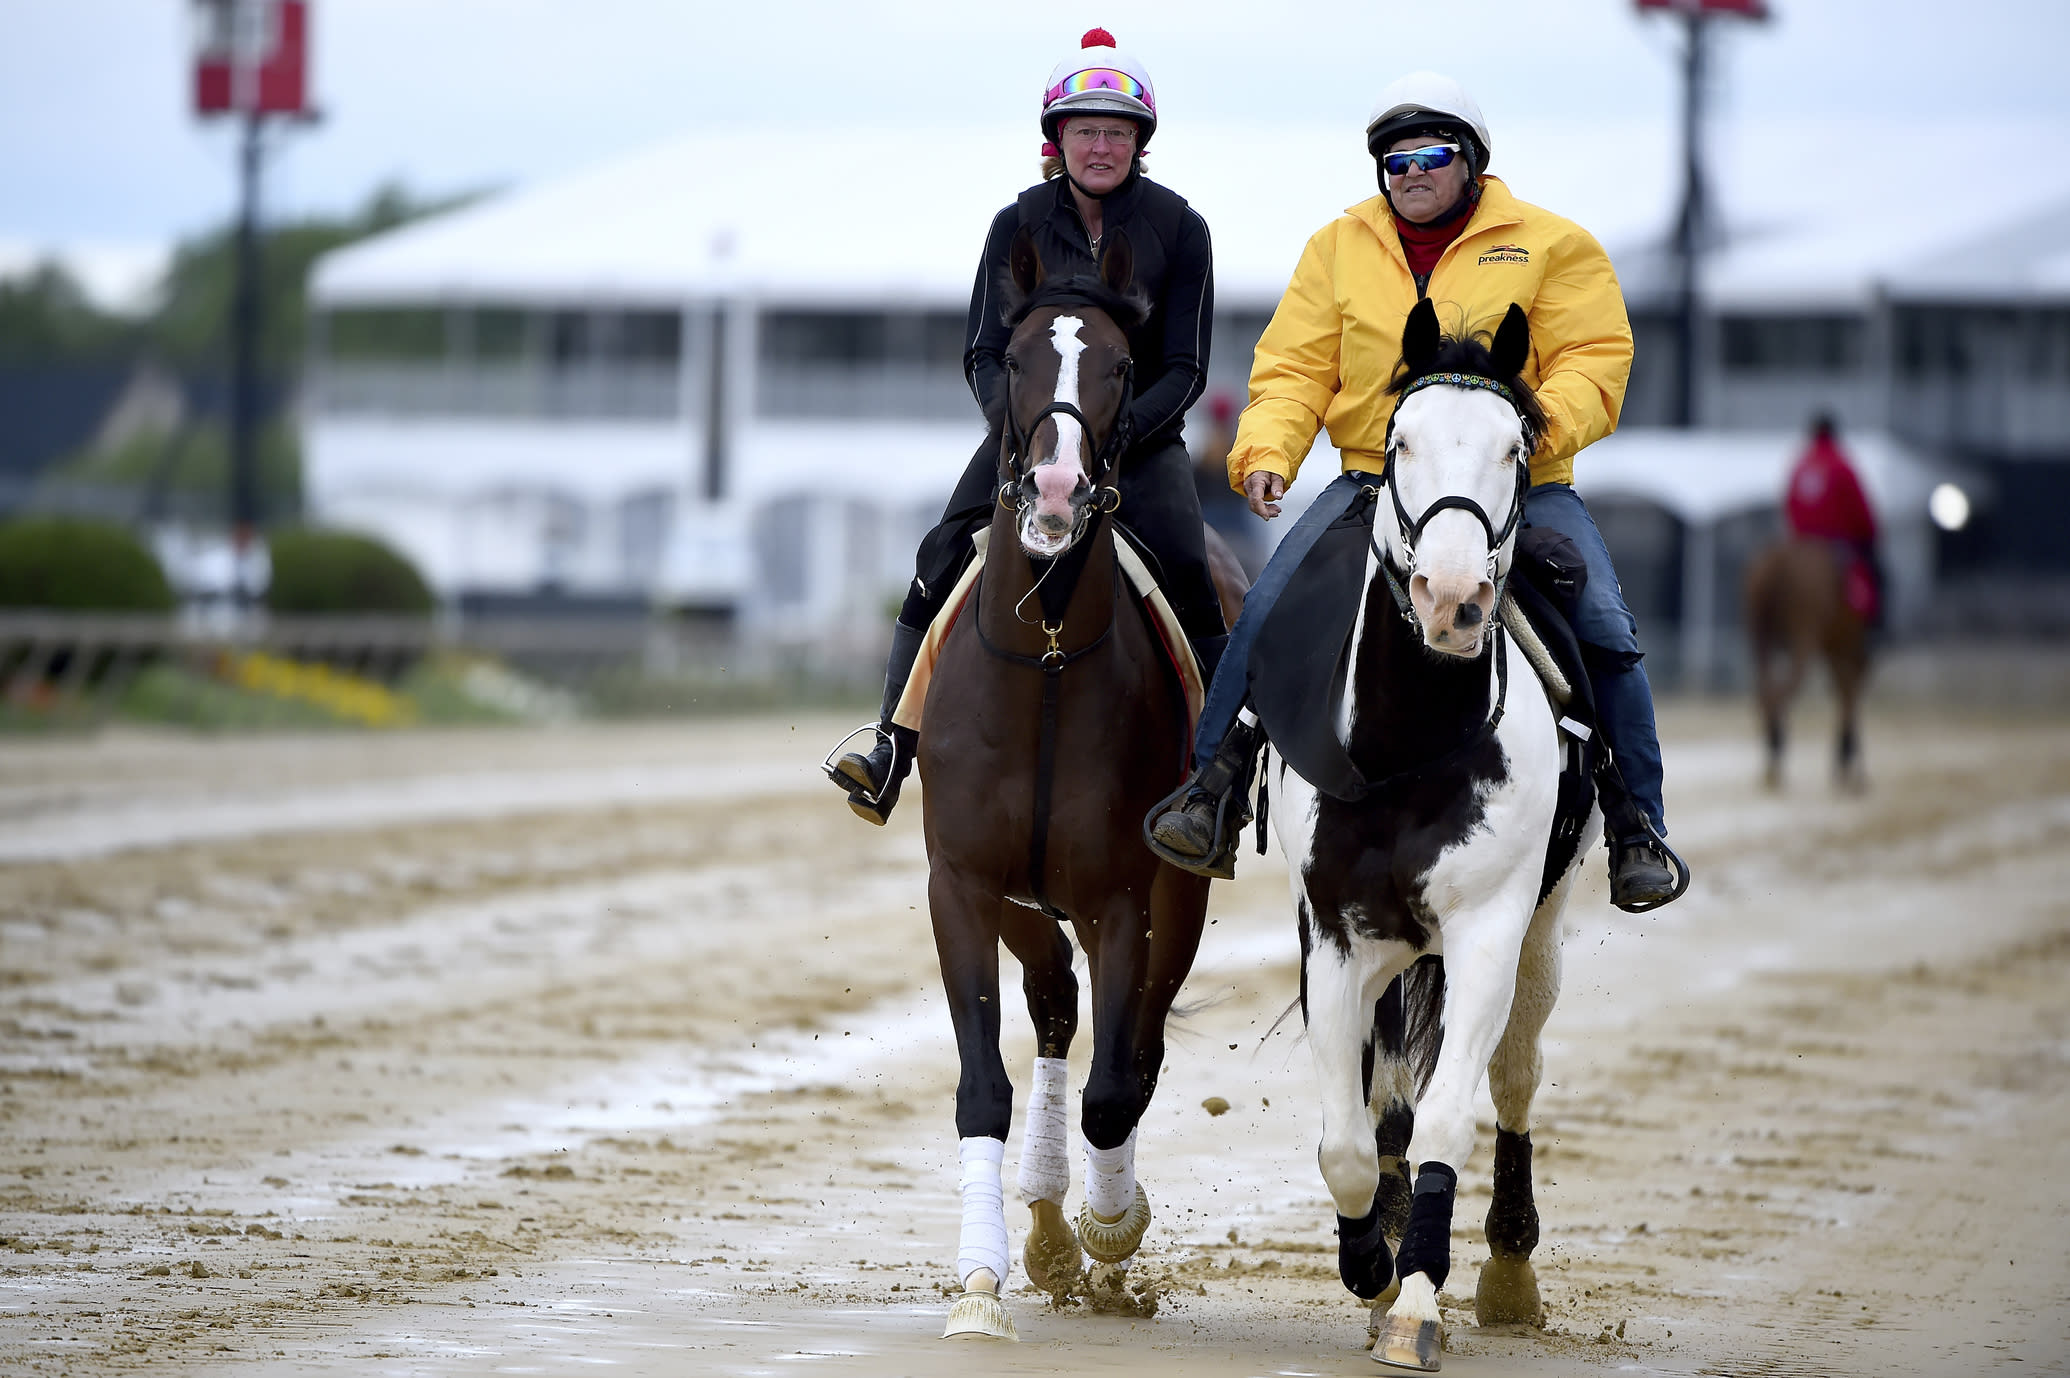 Preakness contender War of Will, left, with exercise rider Kim Carroll aboard, is led onto the track, Tuesday, May 14, 2019, at Pimlico Race Course in Baltimore. The Preakness Stakes horse race is scheduled to take place Saturday, May 18. (AP Photo/Will Newton)